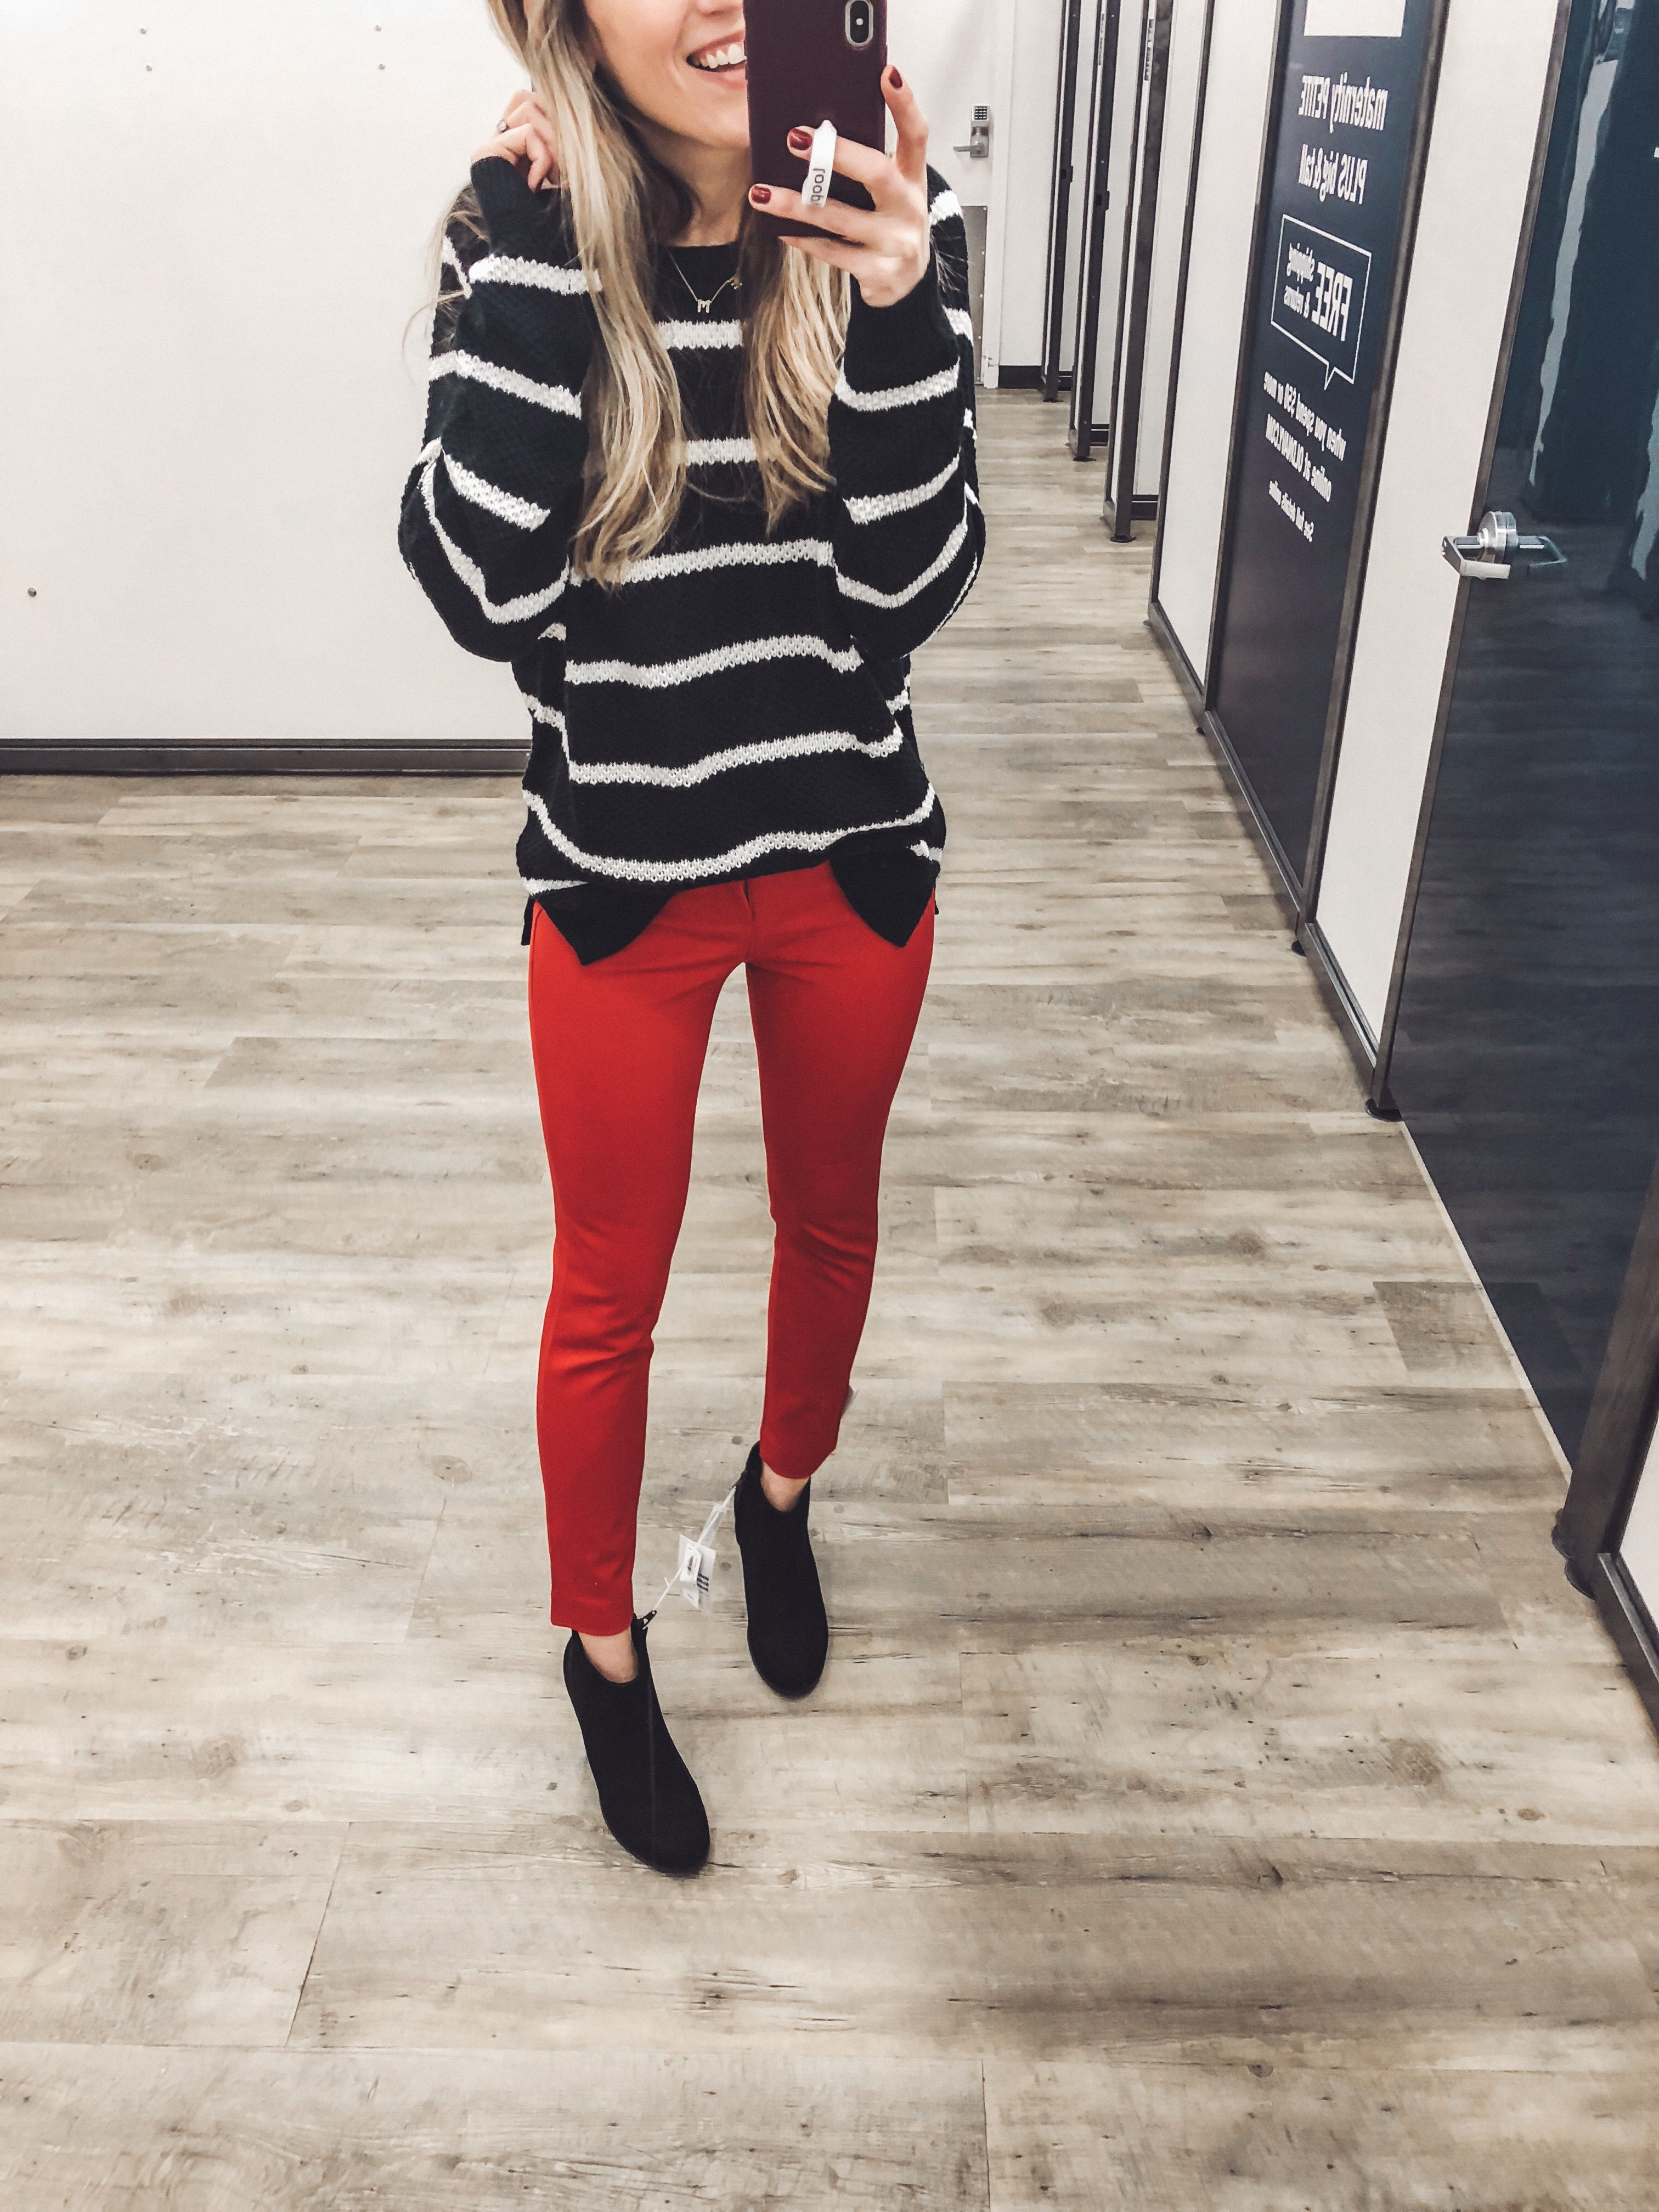 With outfits leggings inspiration to try